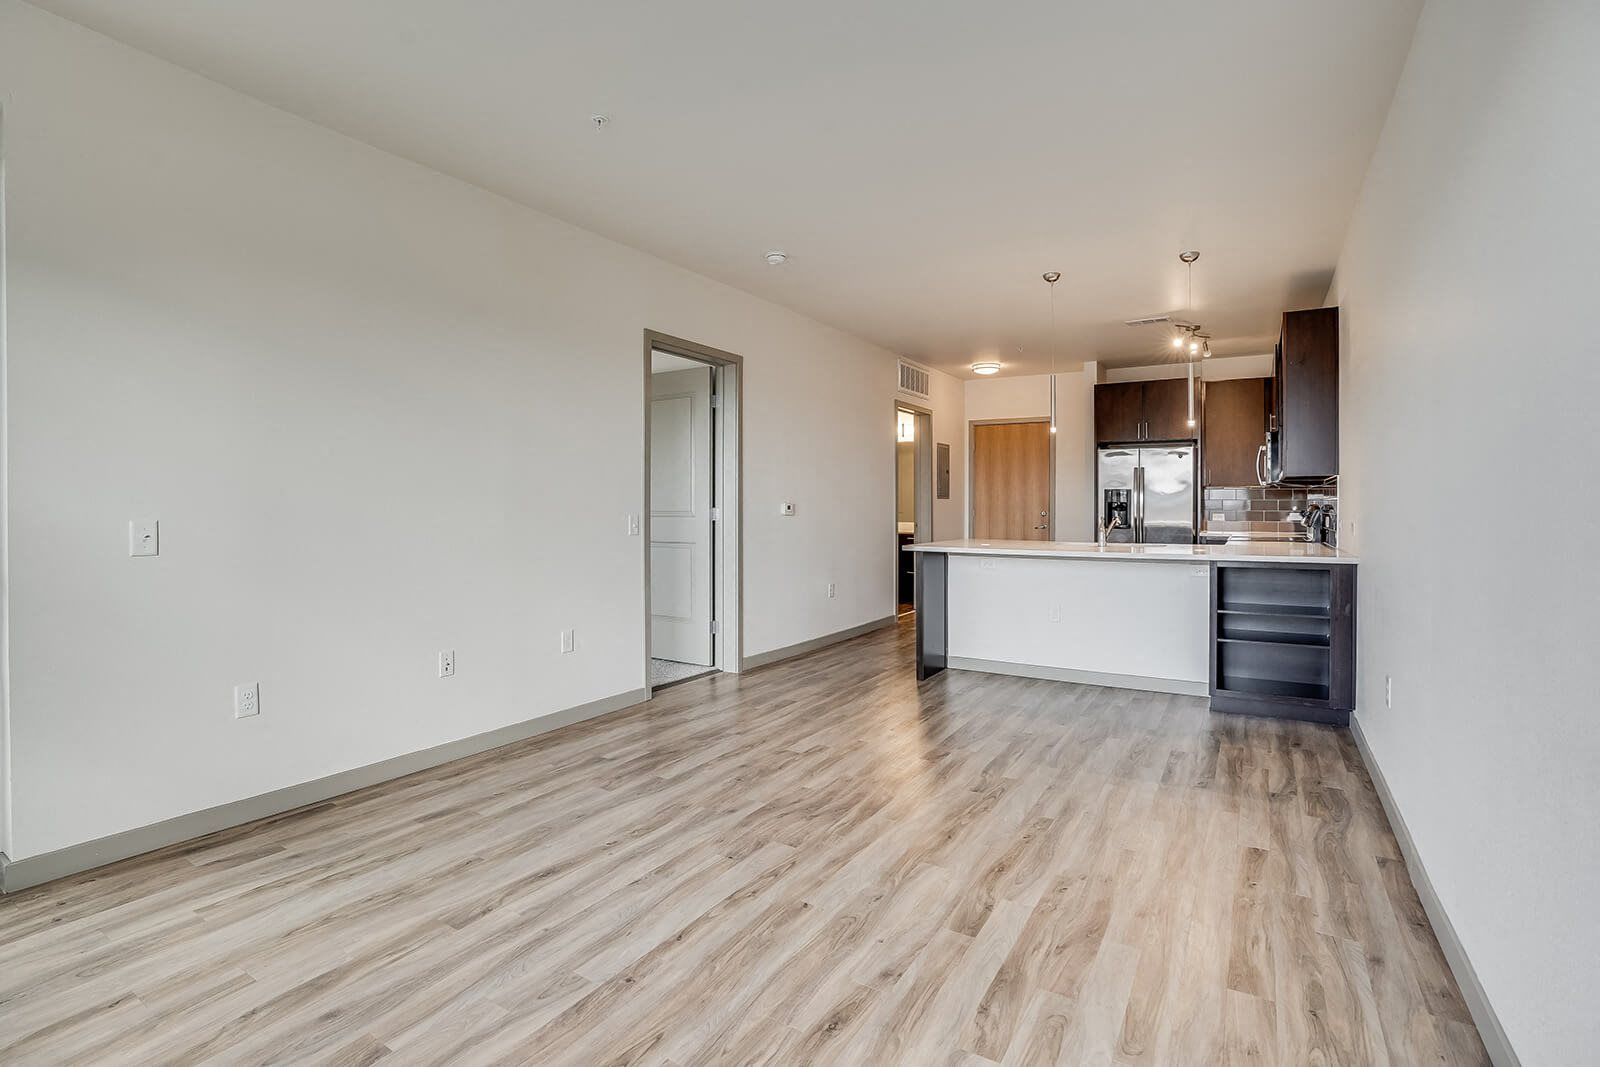 Design and Decoration Flexibility in Apartments at The Casey, 2100 Delgany, Denver